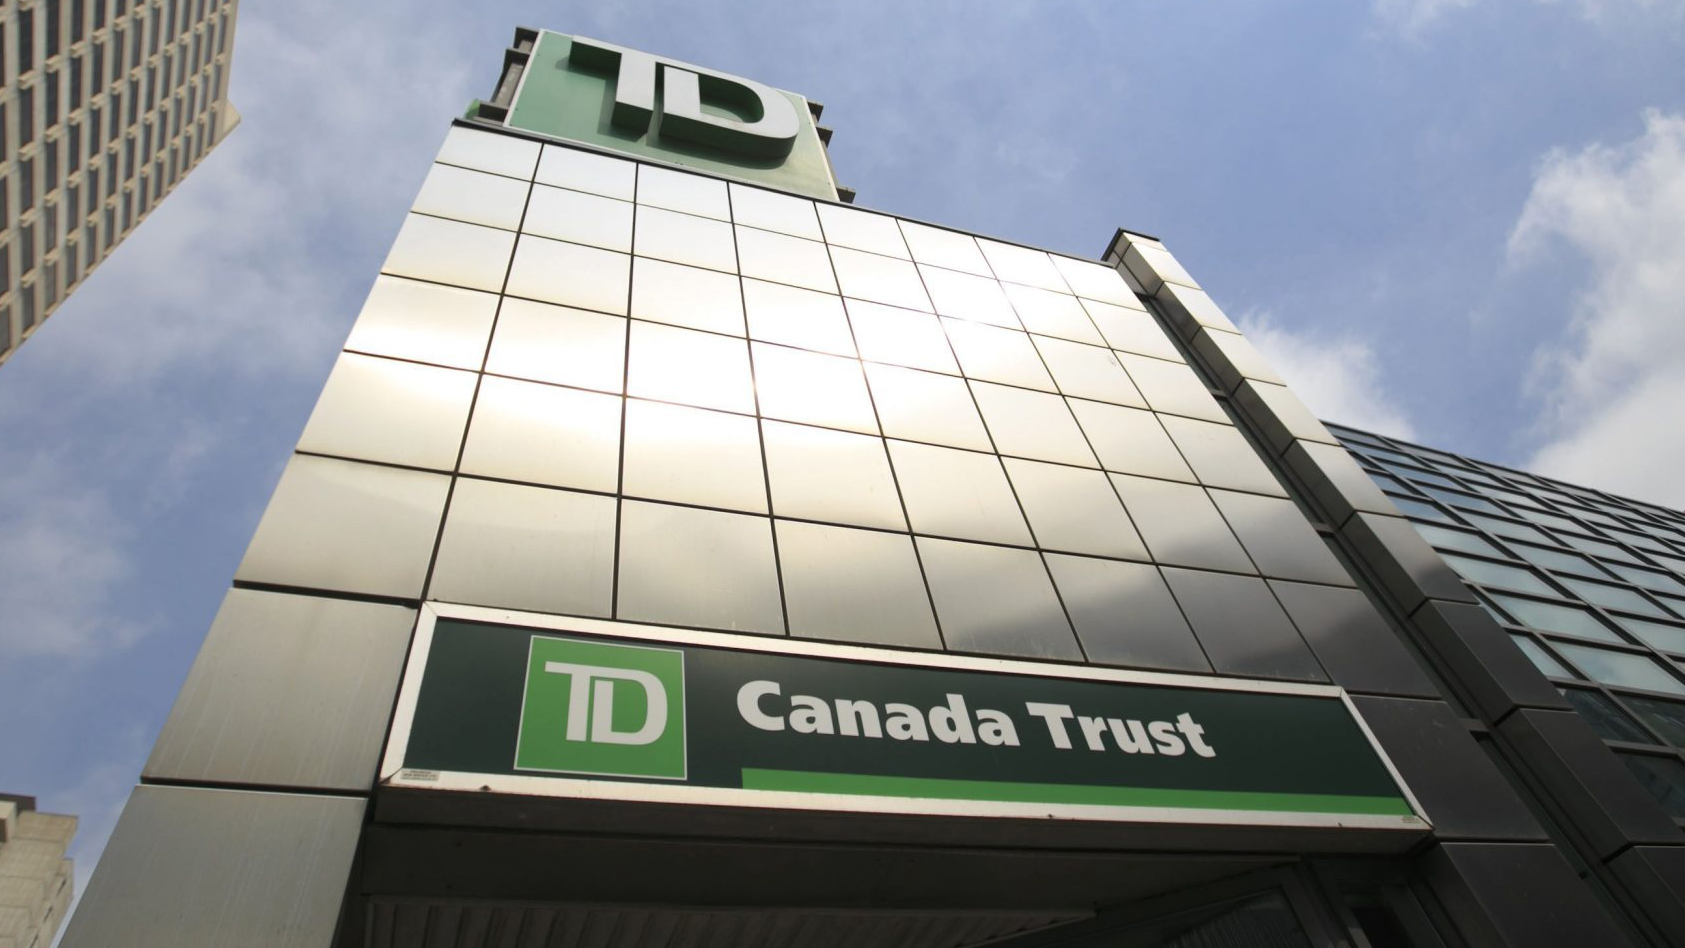 How to connect paypal and td canada trust